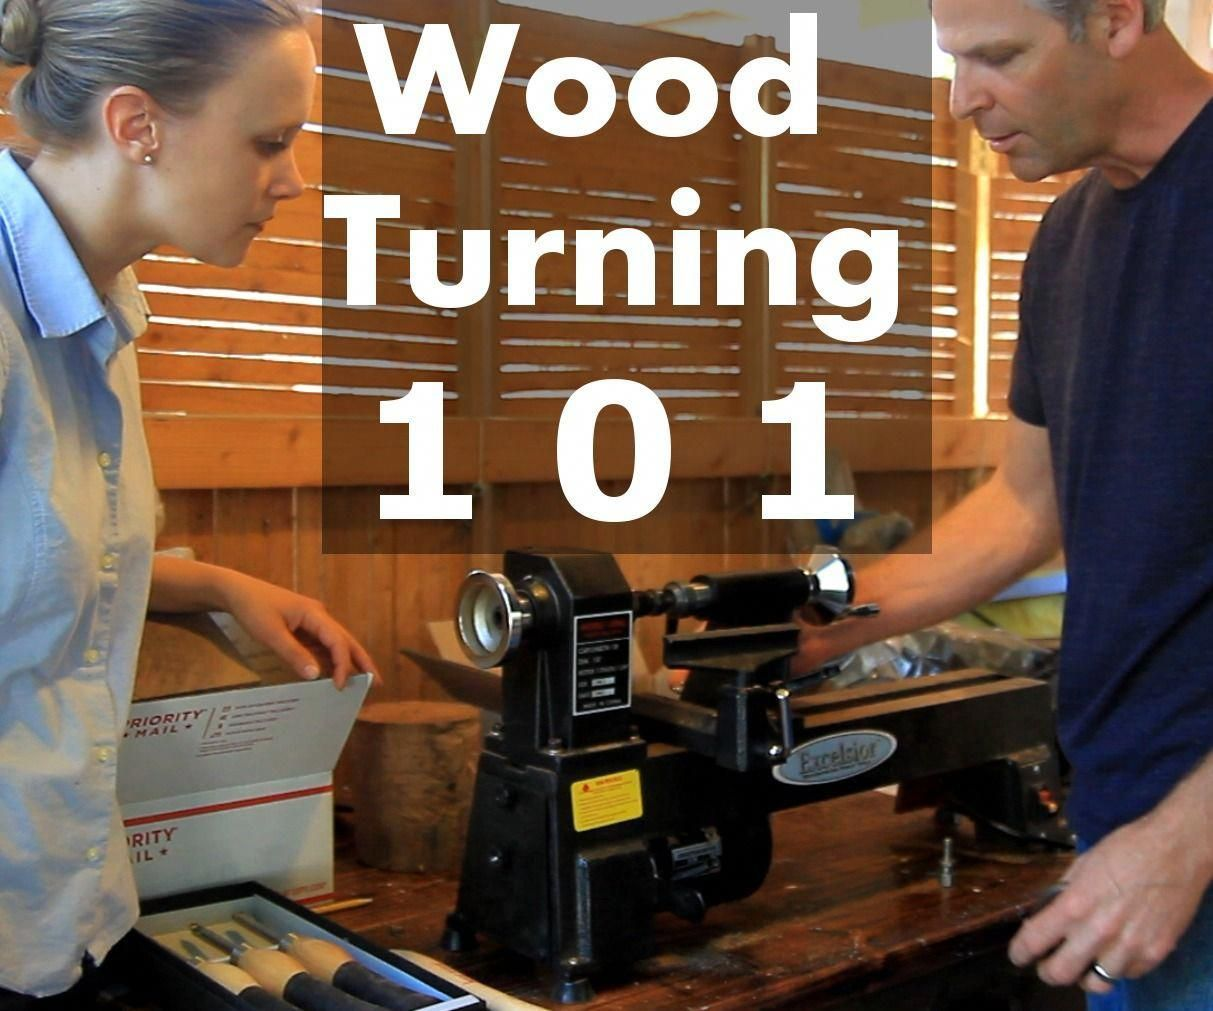 Wood turning can seem like a mystery to many woodworkers